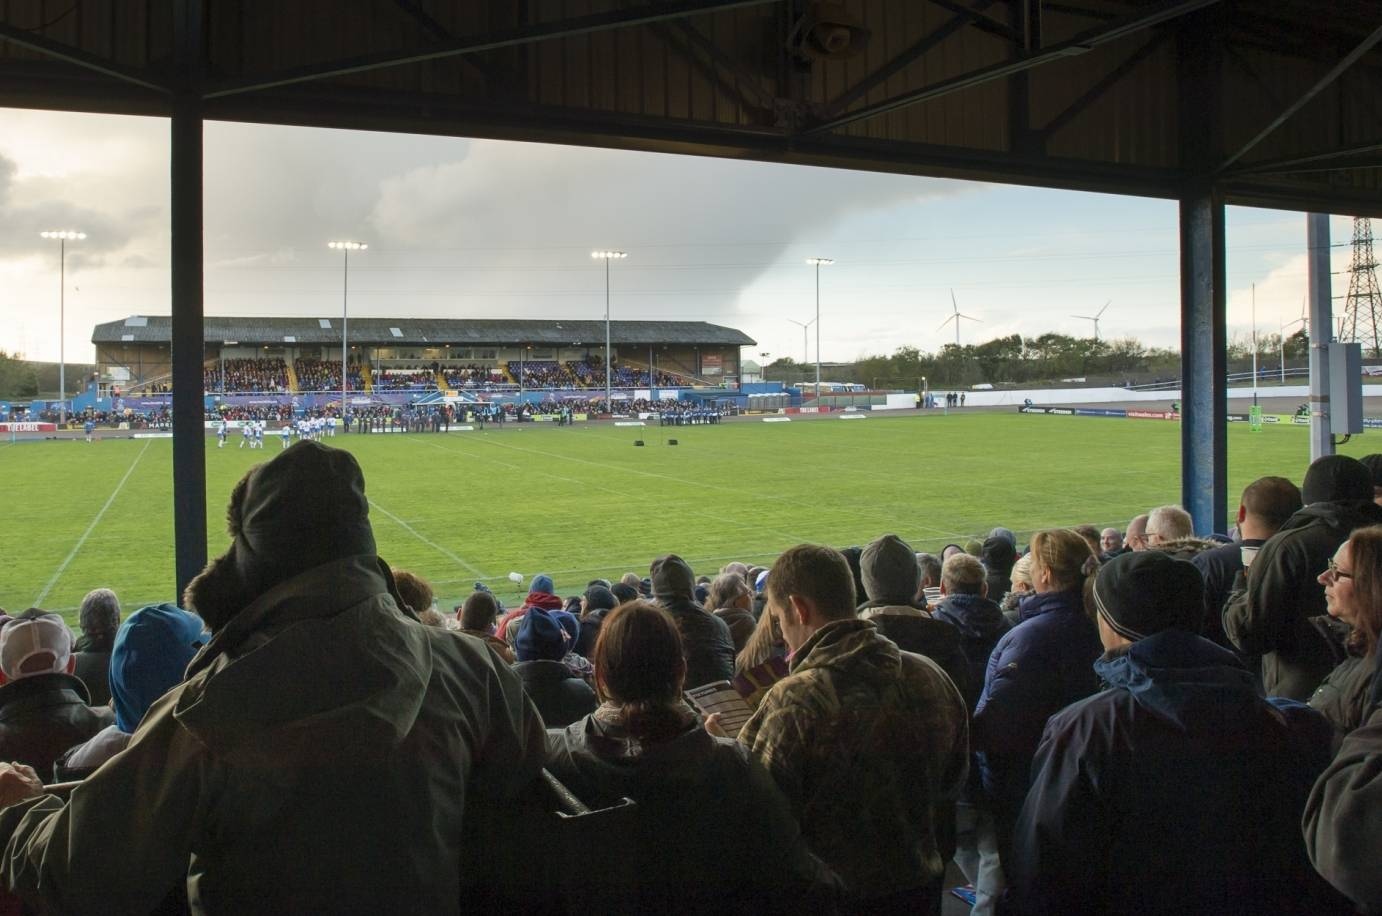 Workington Town v Siddal re-arranged